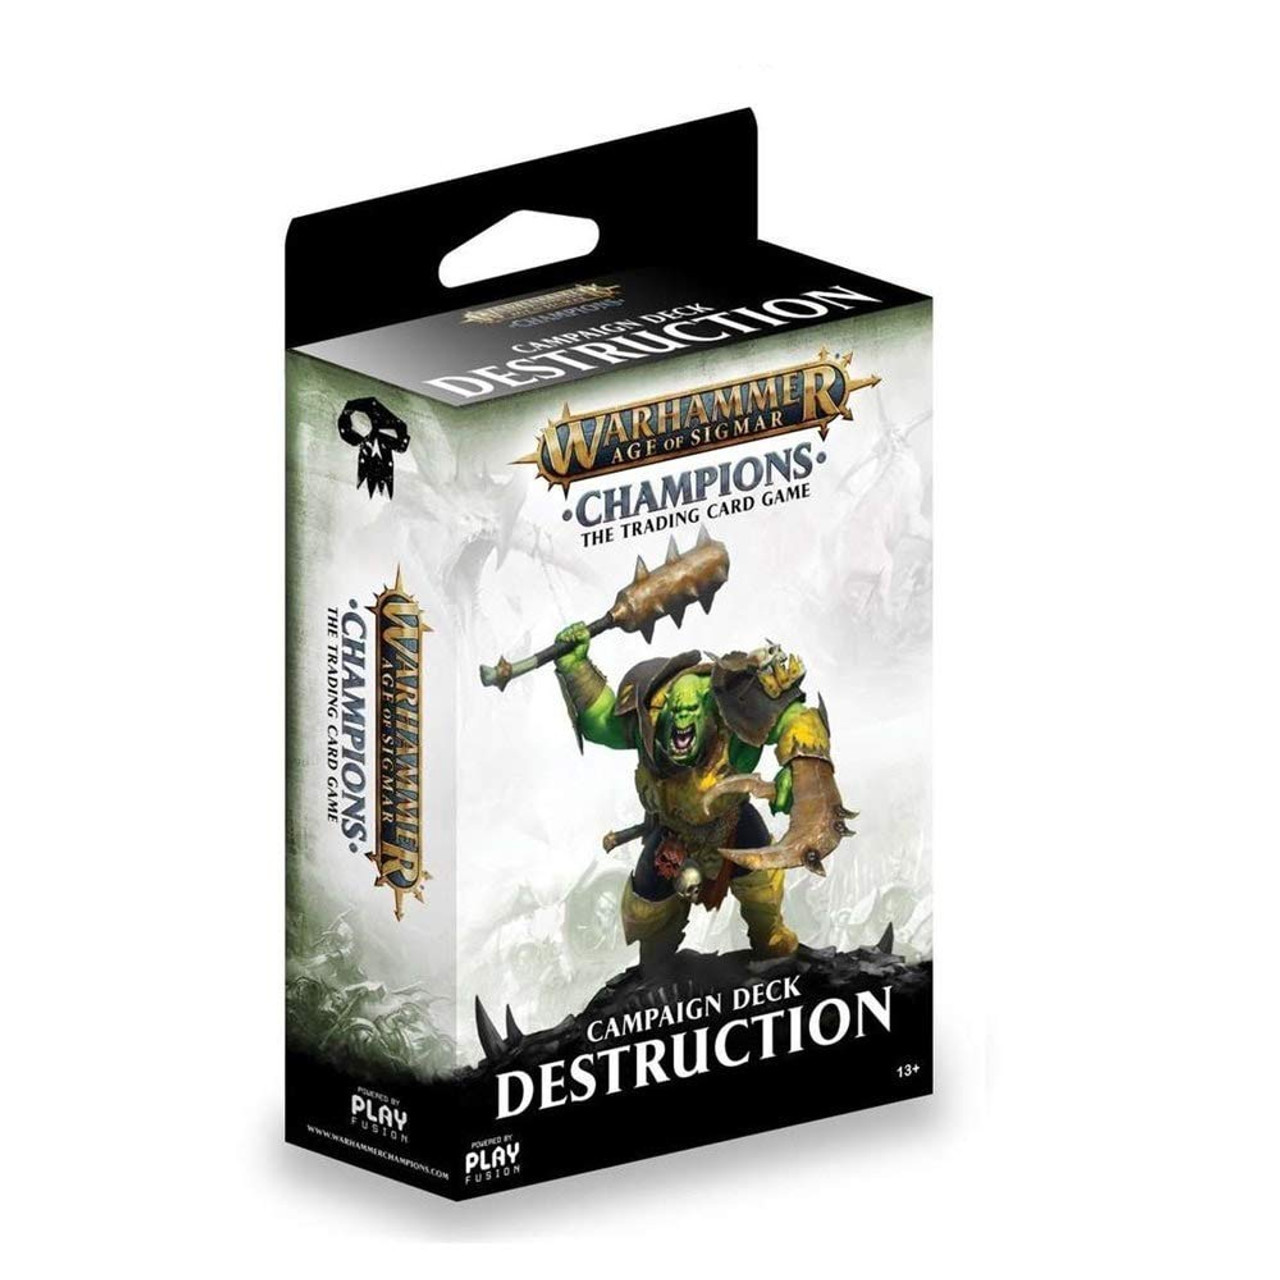 Warhammer Age of Sigmar Champions TCG - DESTRUCTION Campaign Deck